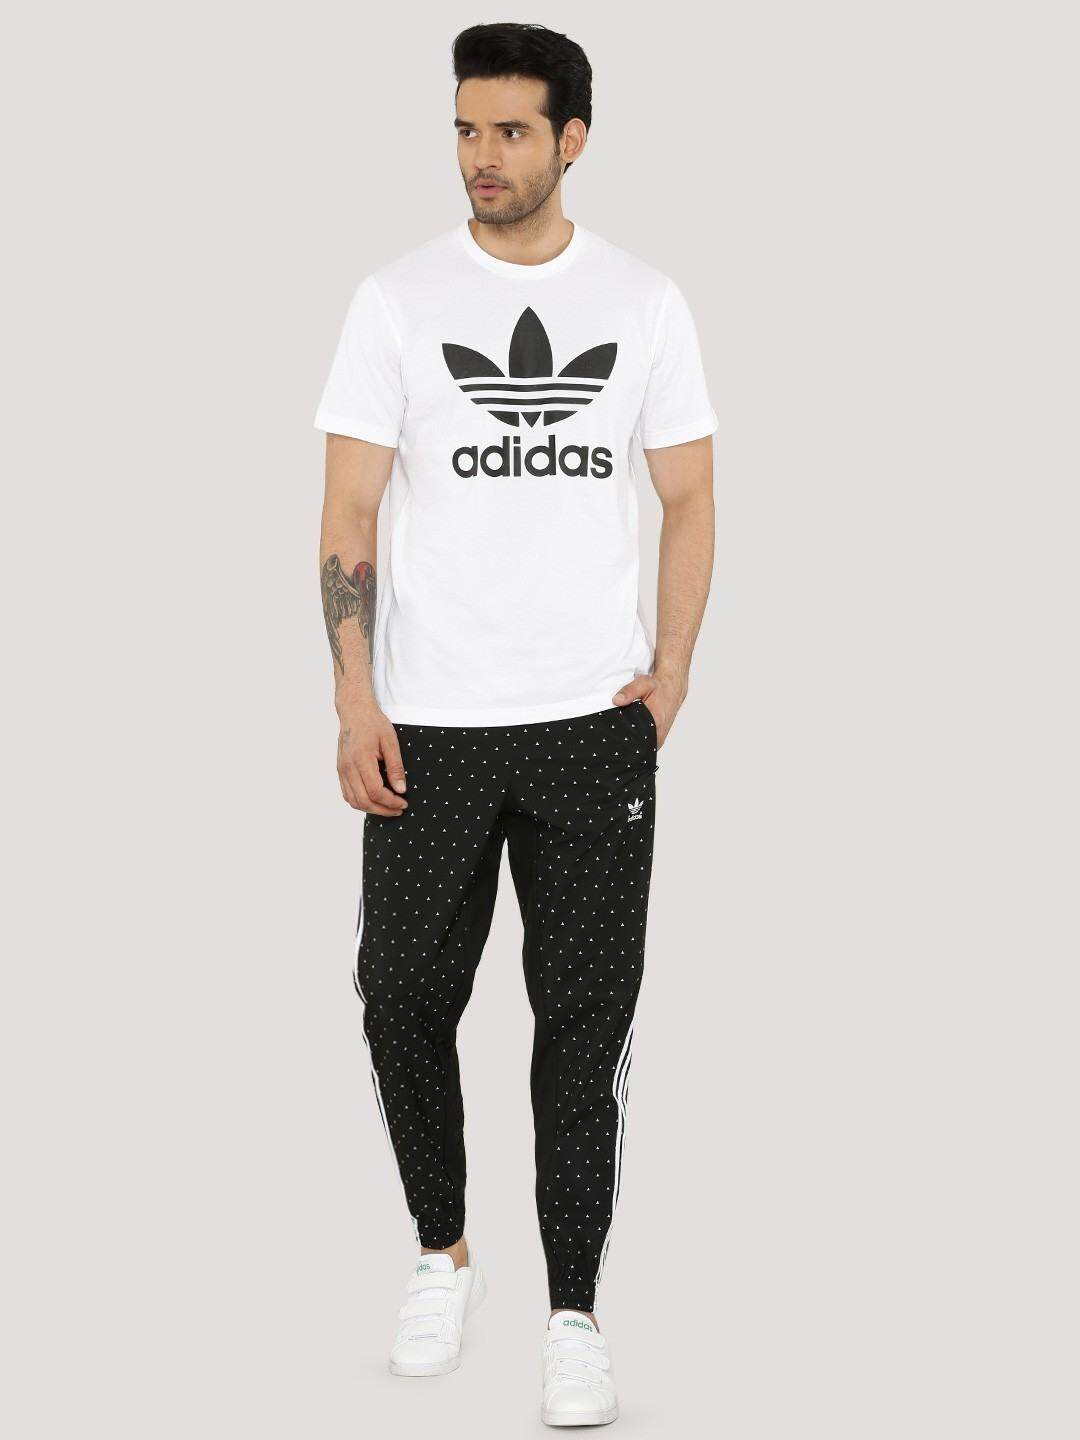 Popular T Shirts For Men The Best Prices In Malaysia Tendencies Tshirt Ny Life Hitam L Adidas Unisex 100 Cotton 2018 New Quality Update